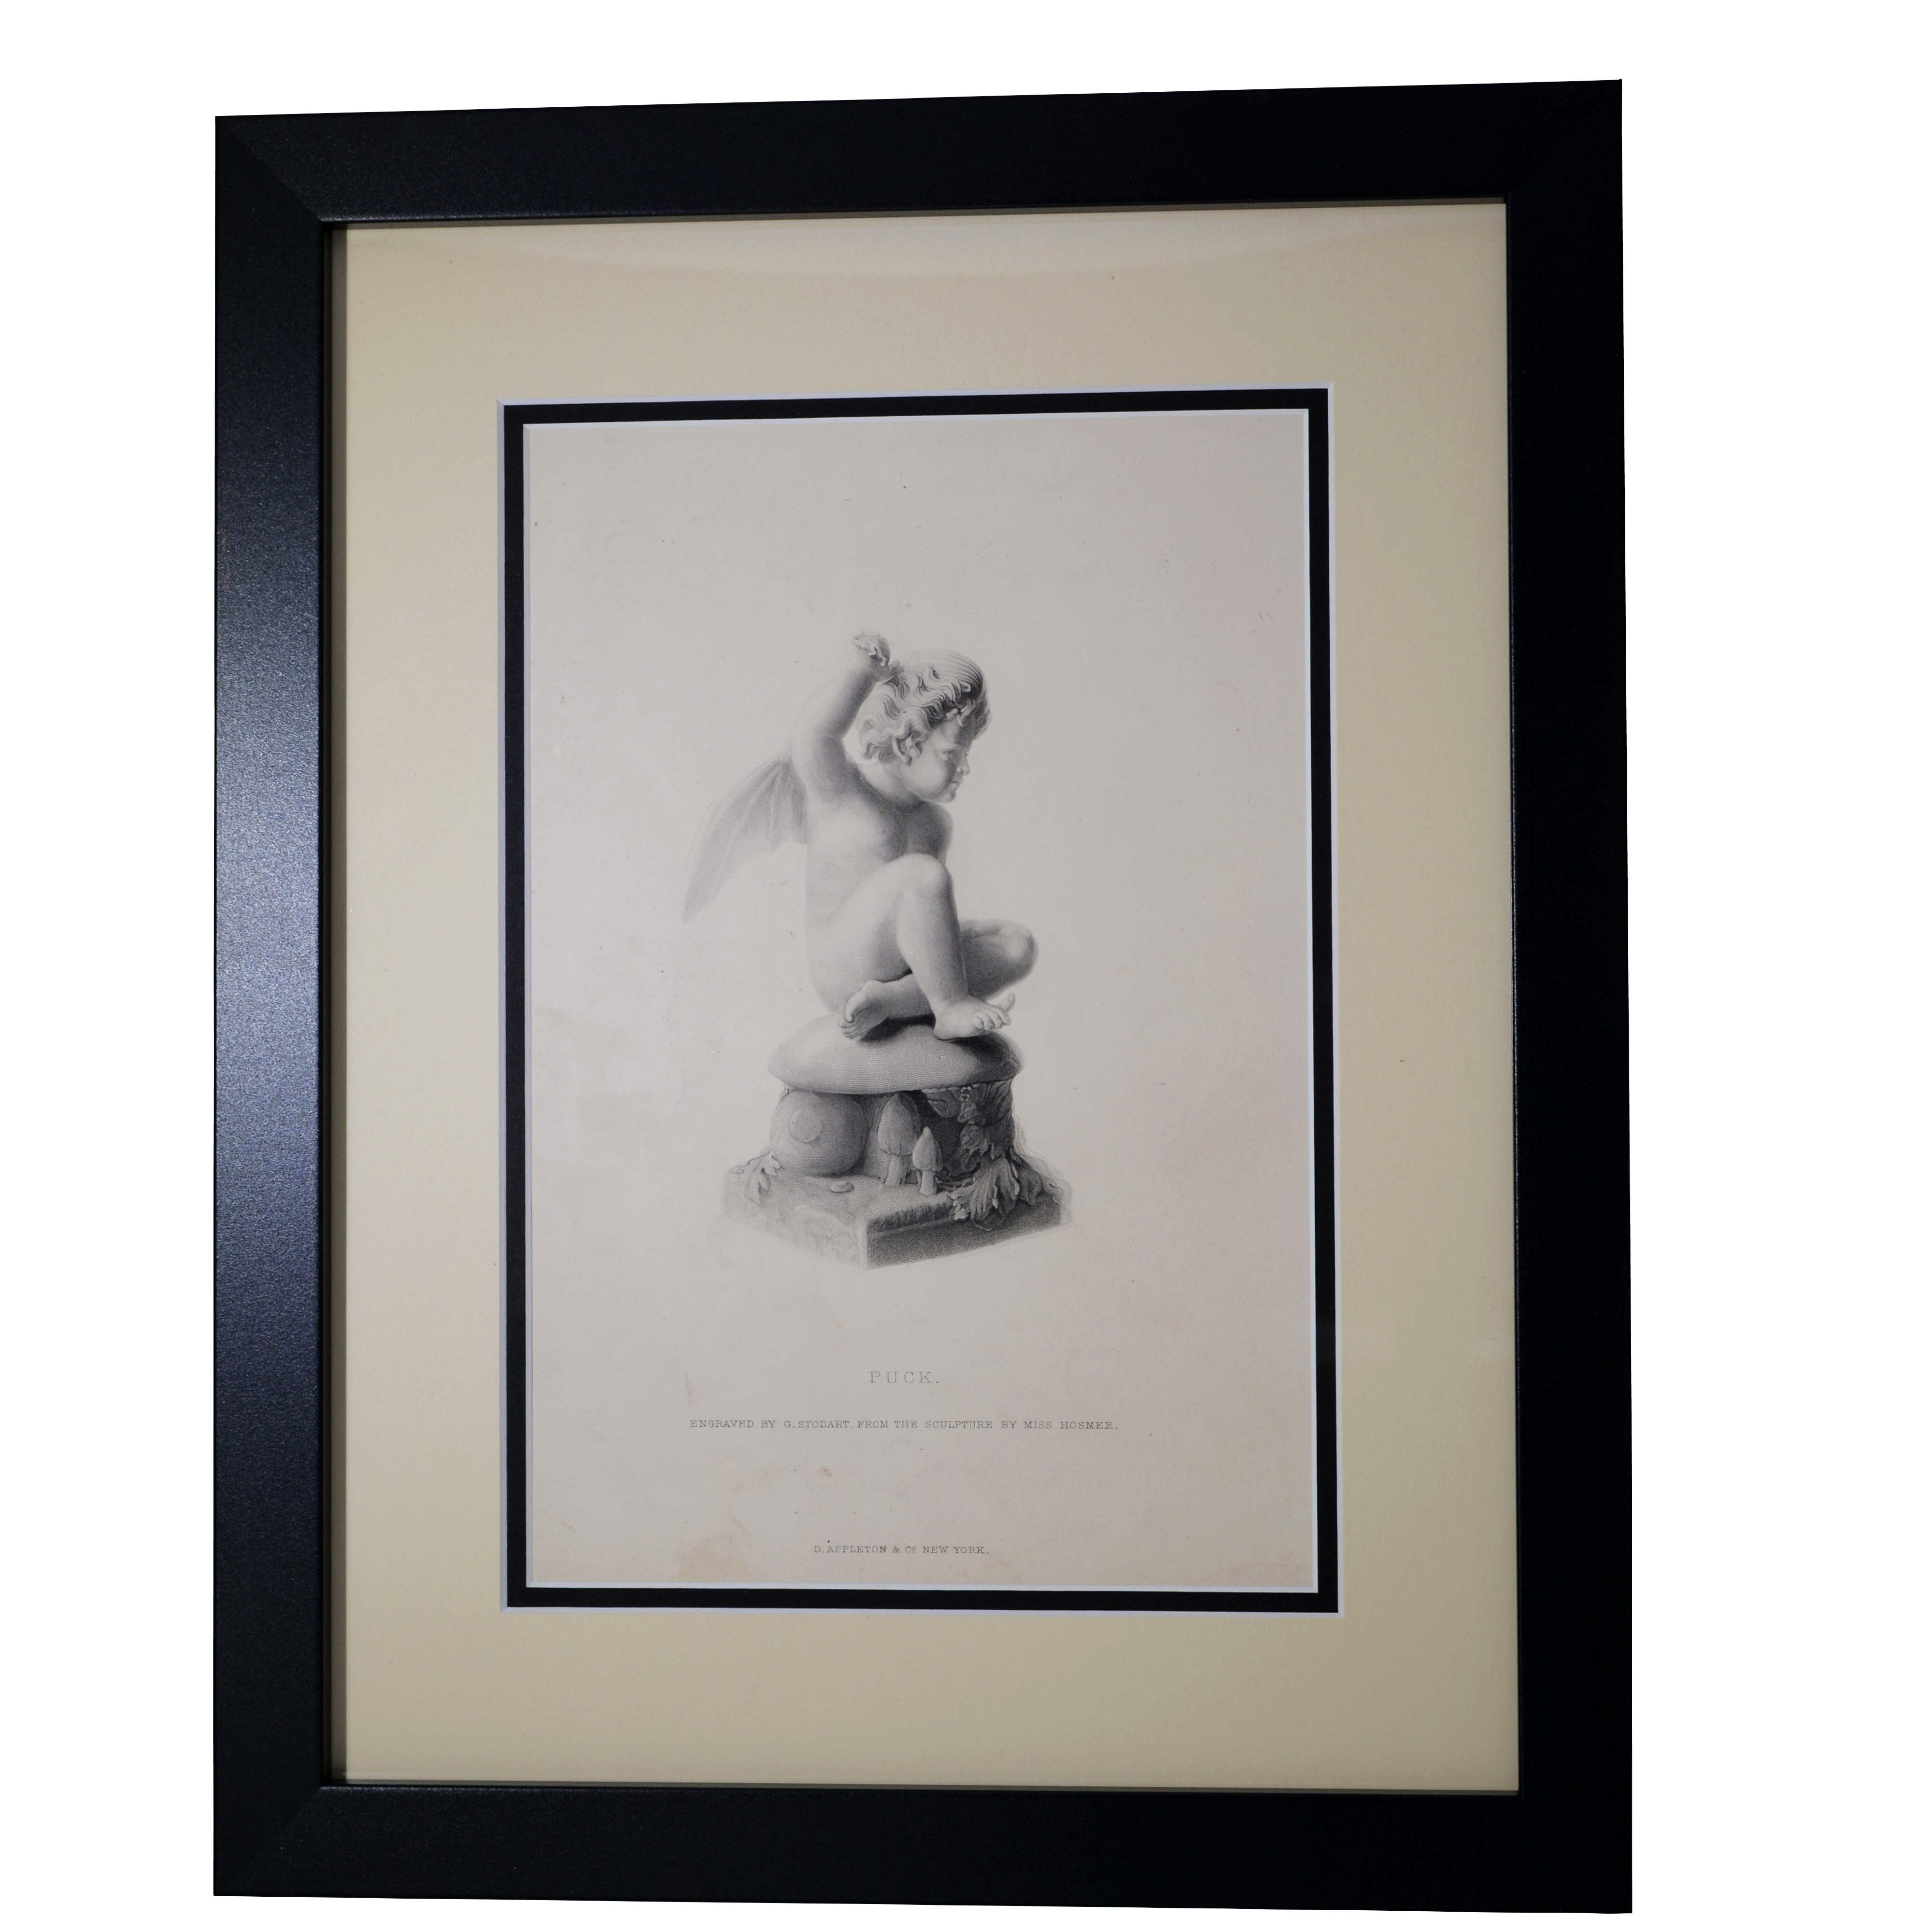 Antique Print - Puck, Engraved by G. Stodart from the Sculpture by Miss Hosmer